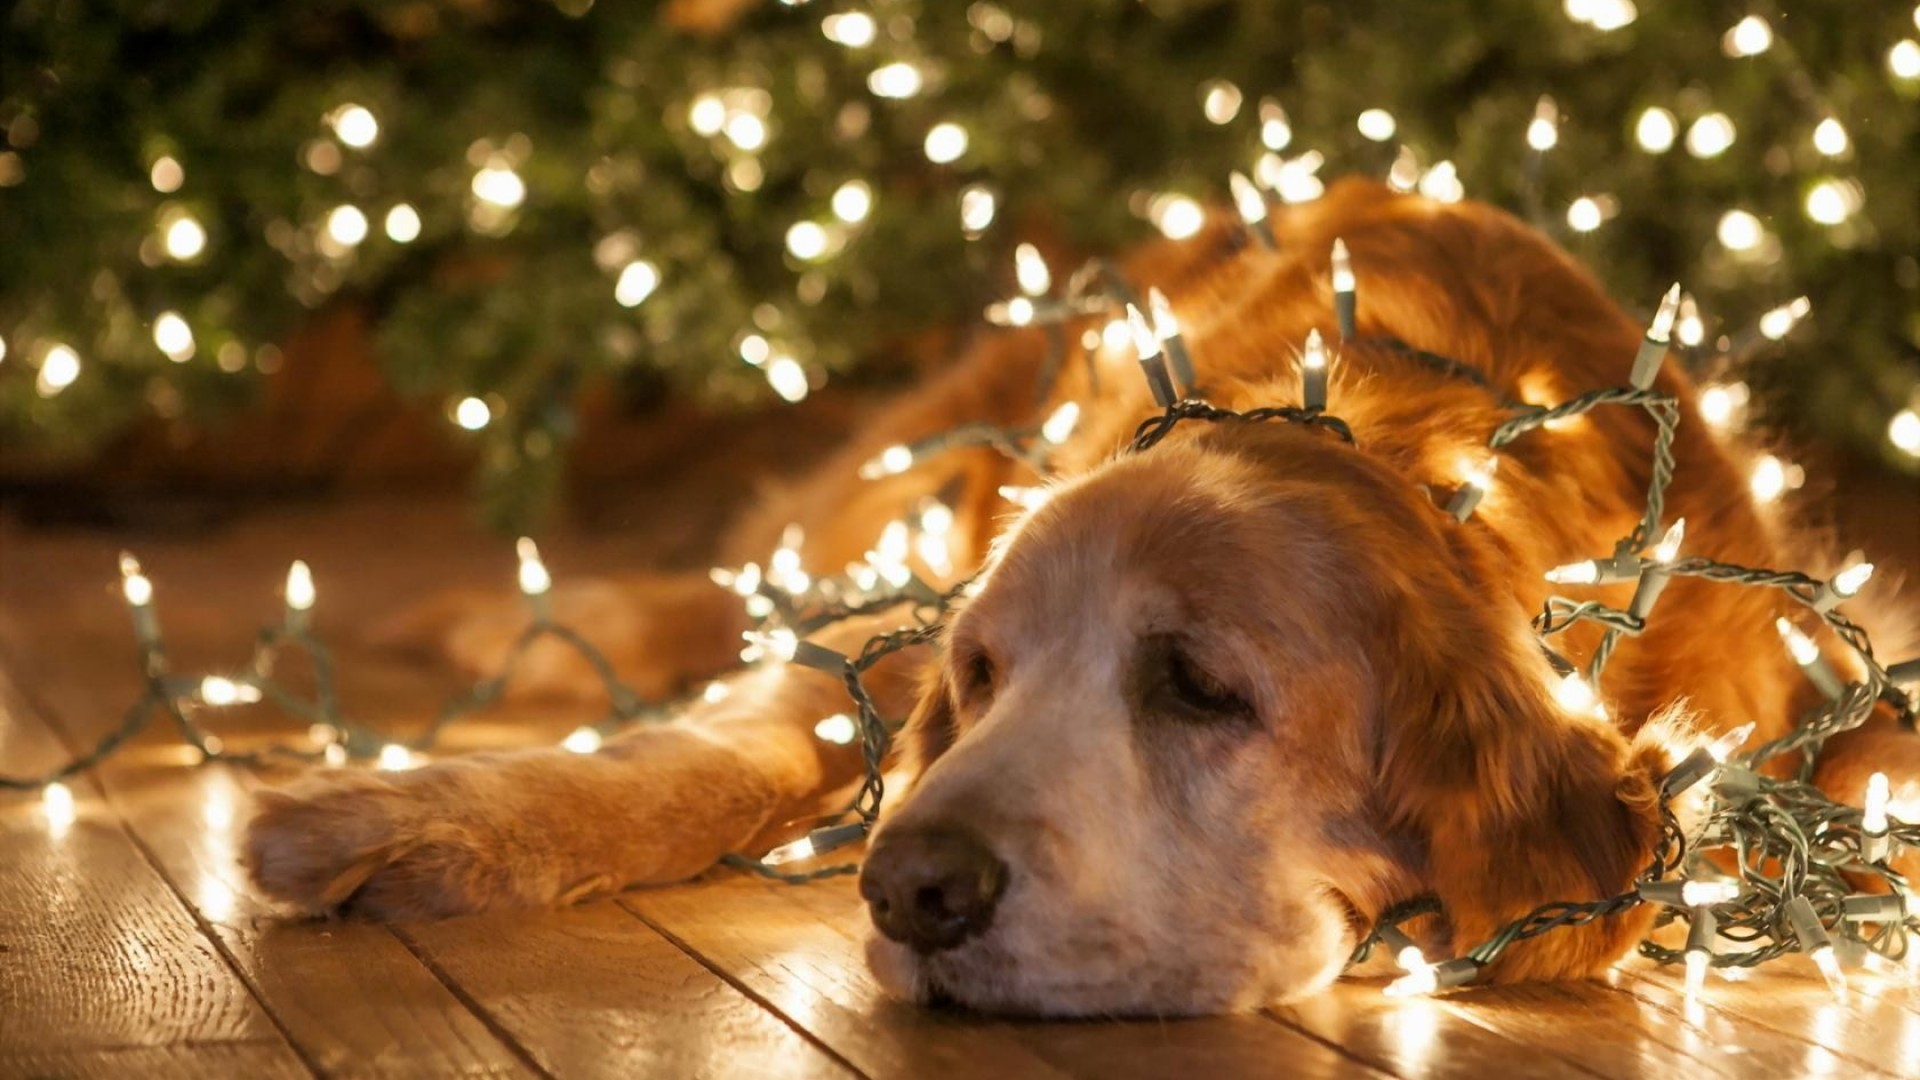 Dog Under Christmas Lights